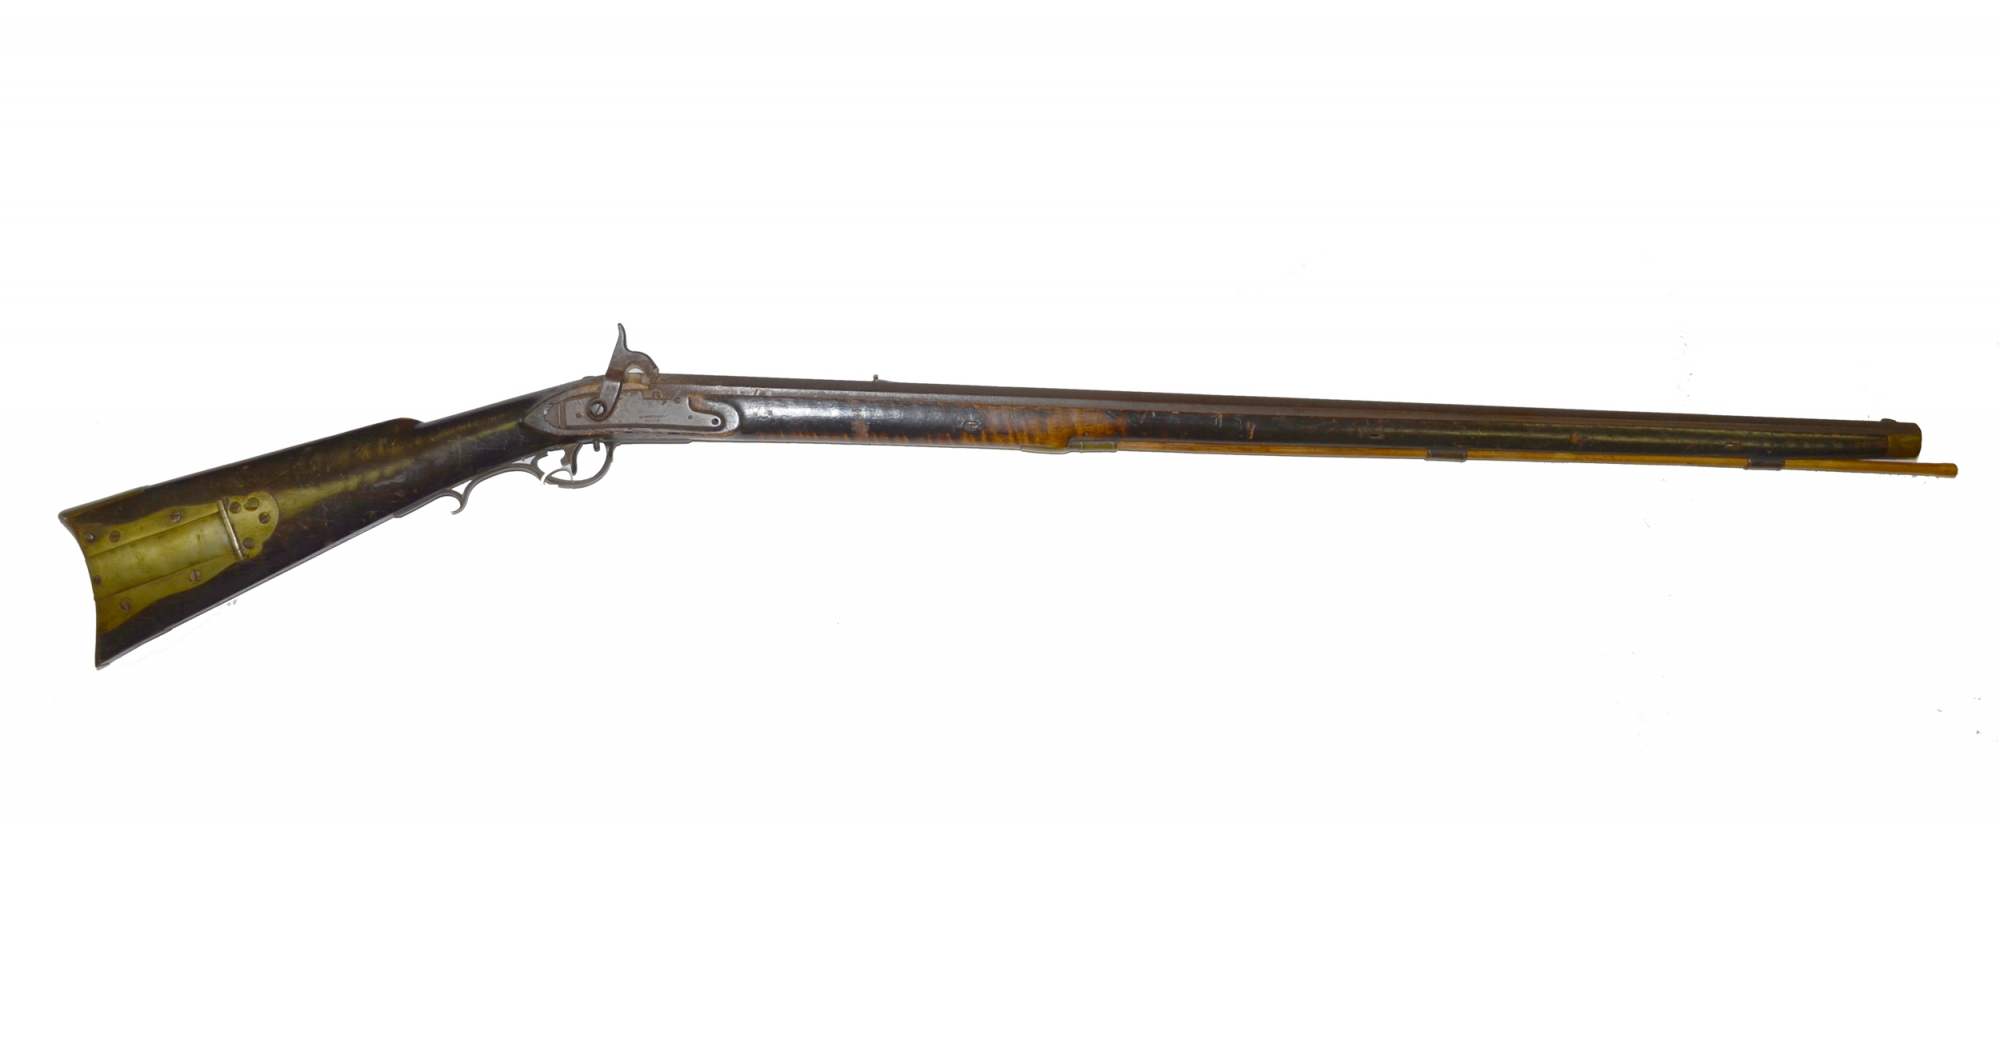 DERINGER MILITARY FLINTLOCK RIFLE CONVERTED TO PERCUSSION